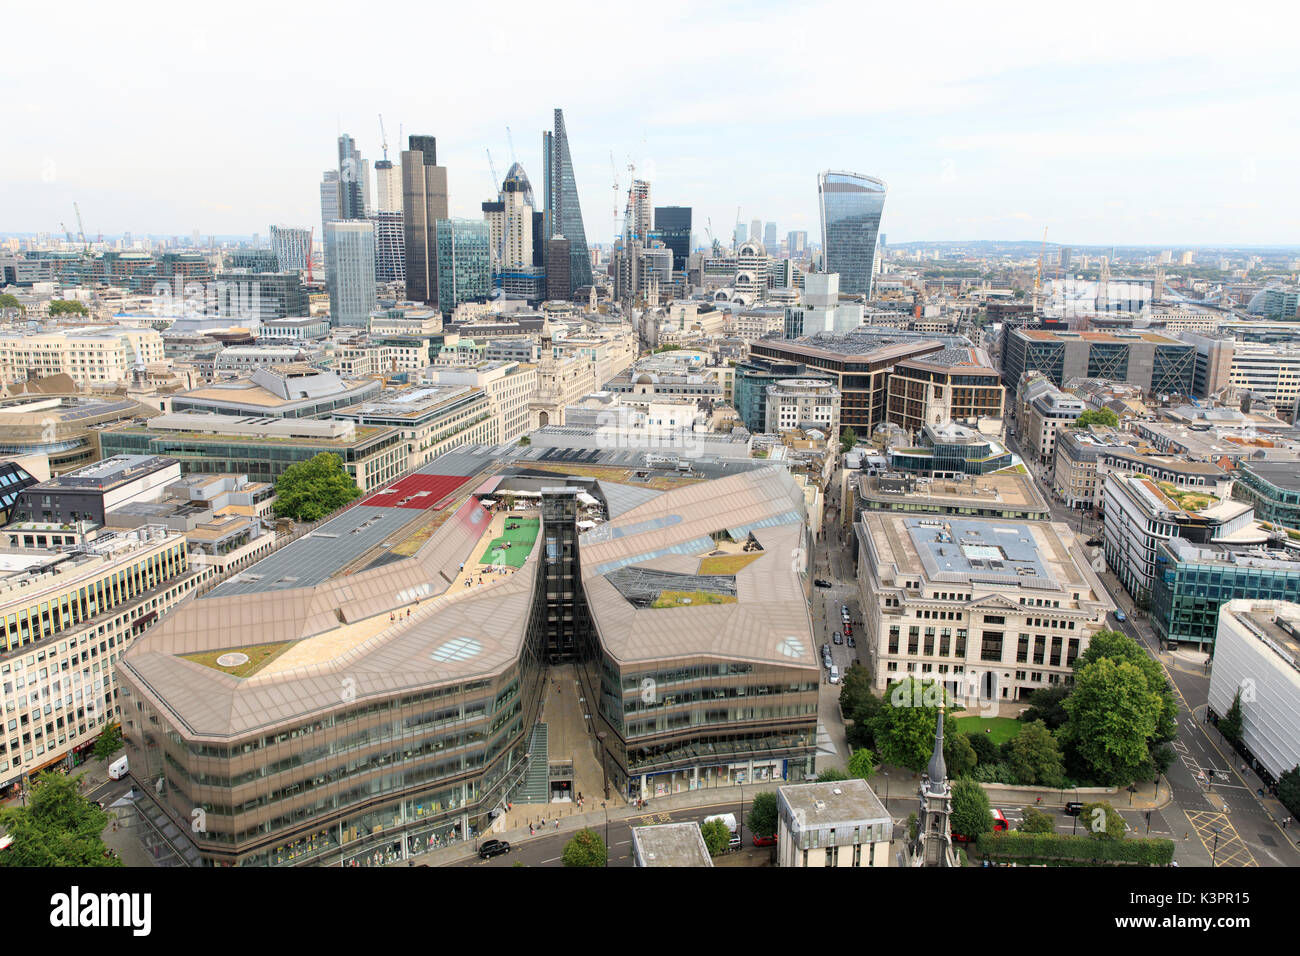 View of the City of London, as seen from the Golden Gallery of St. Paul's Cathedral. - Stock Image